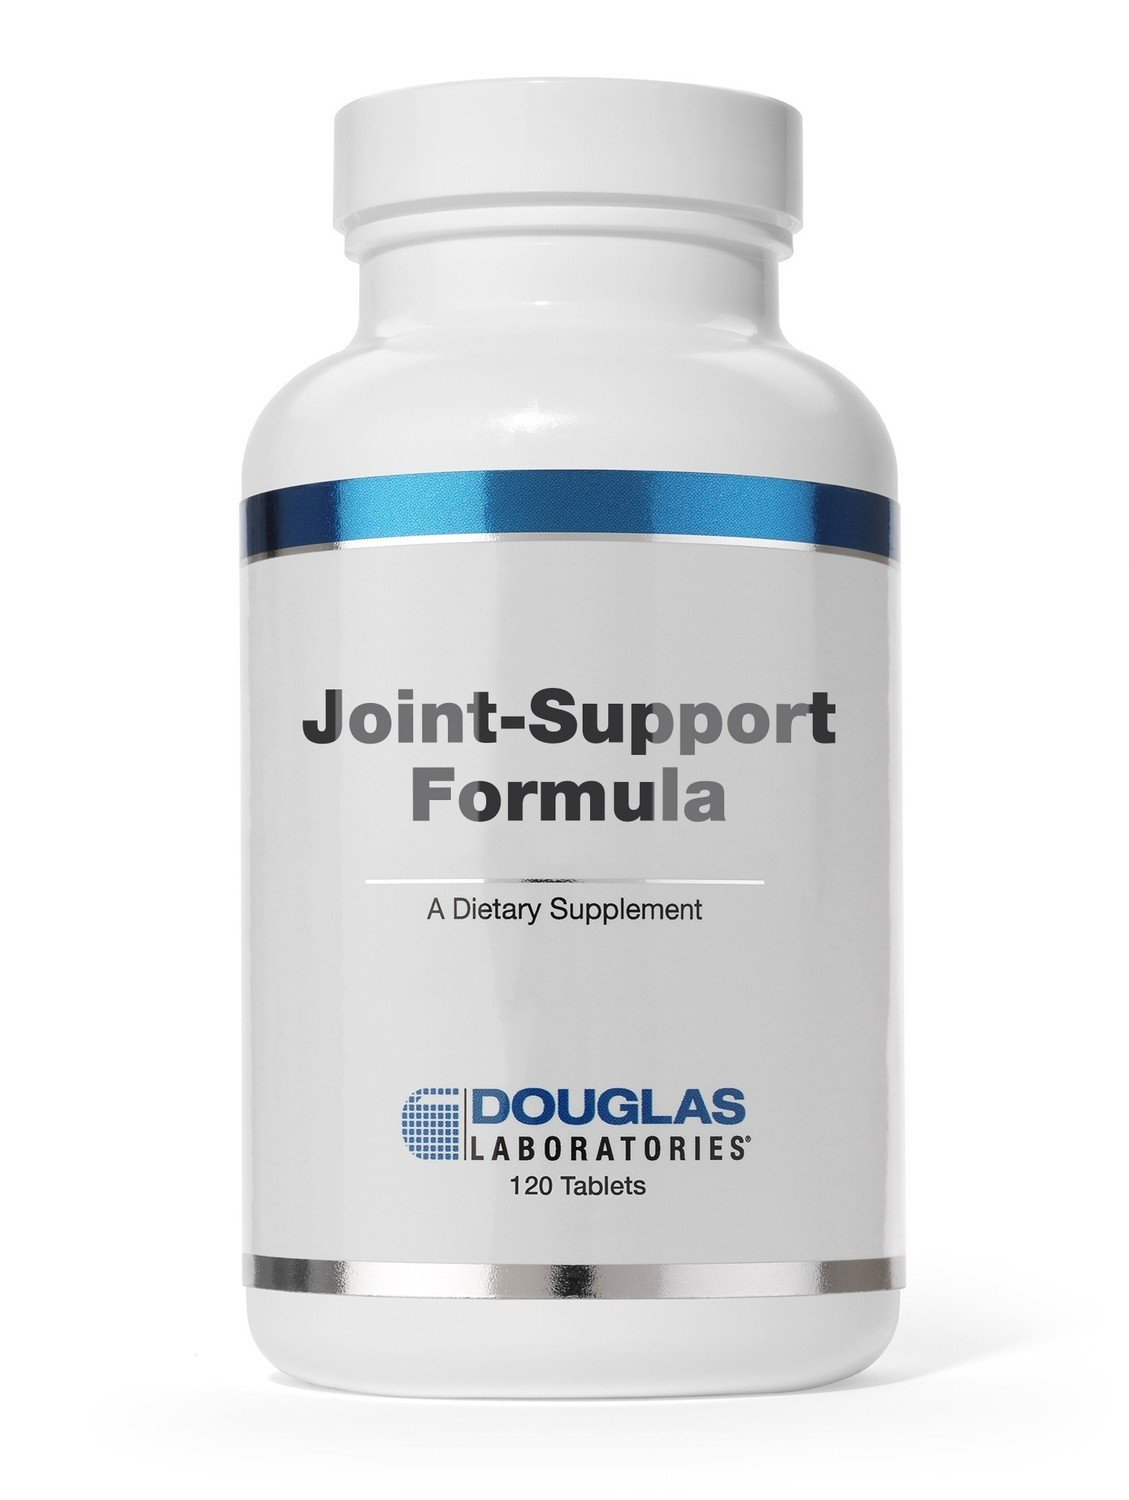 Joint-Support Formula